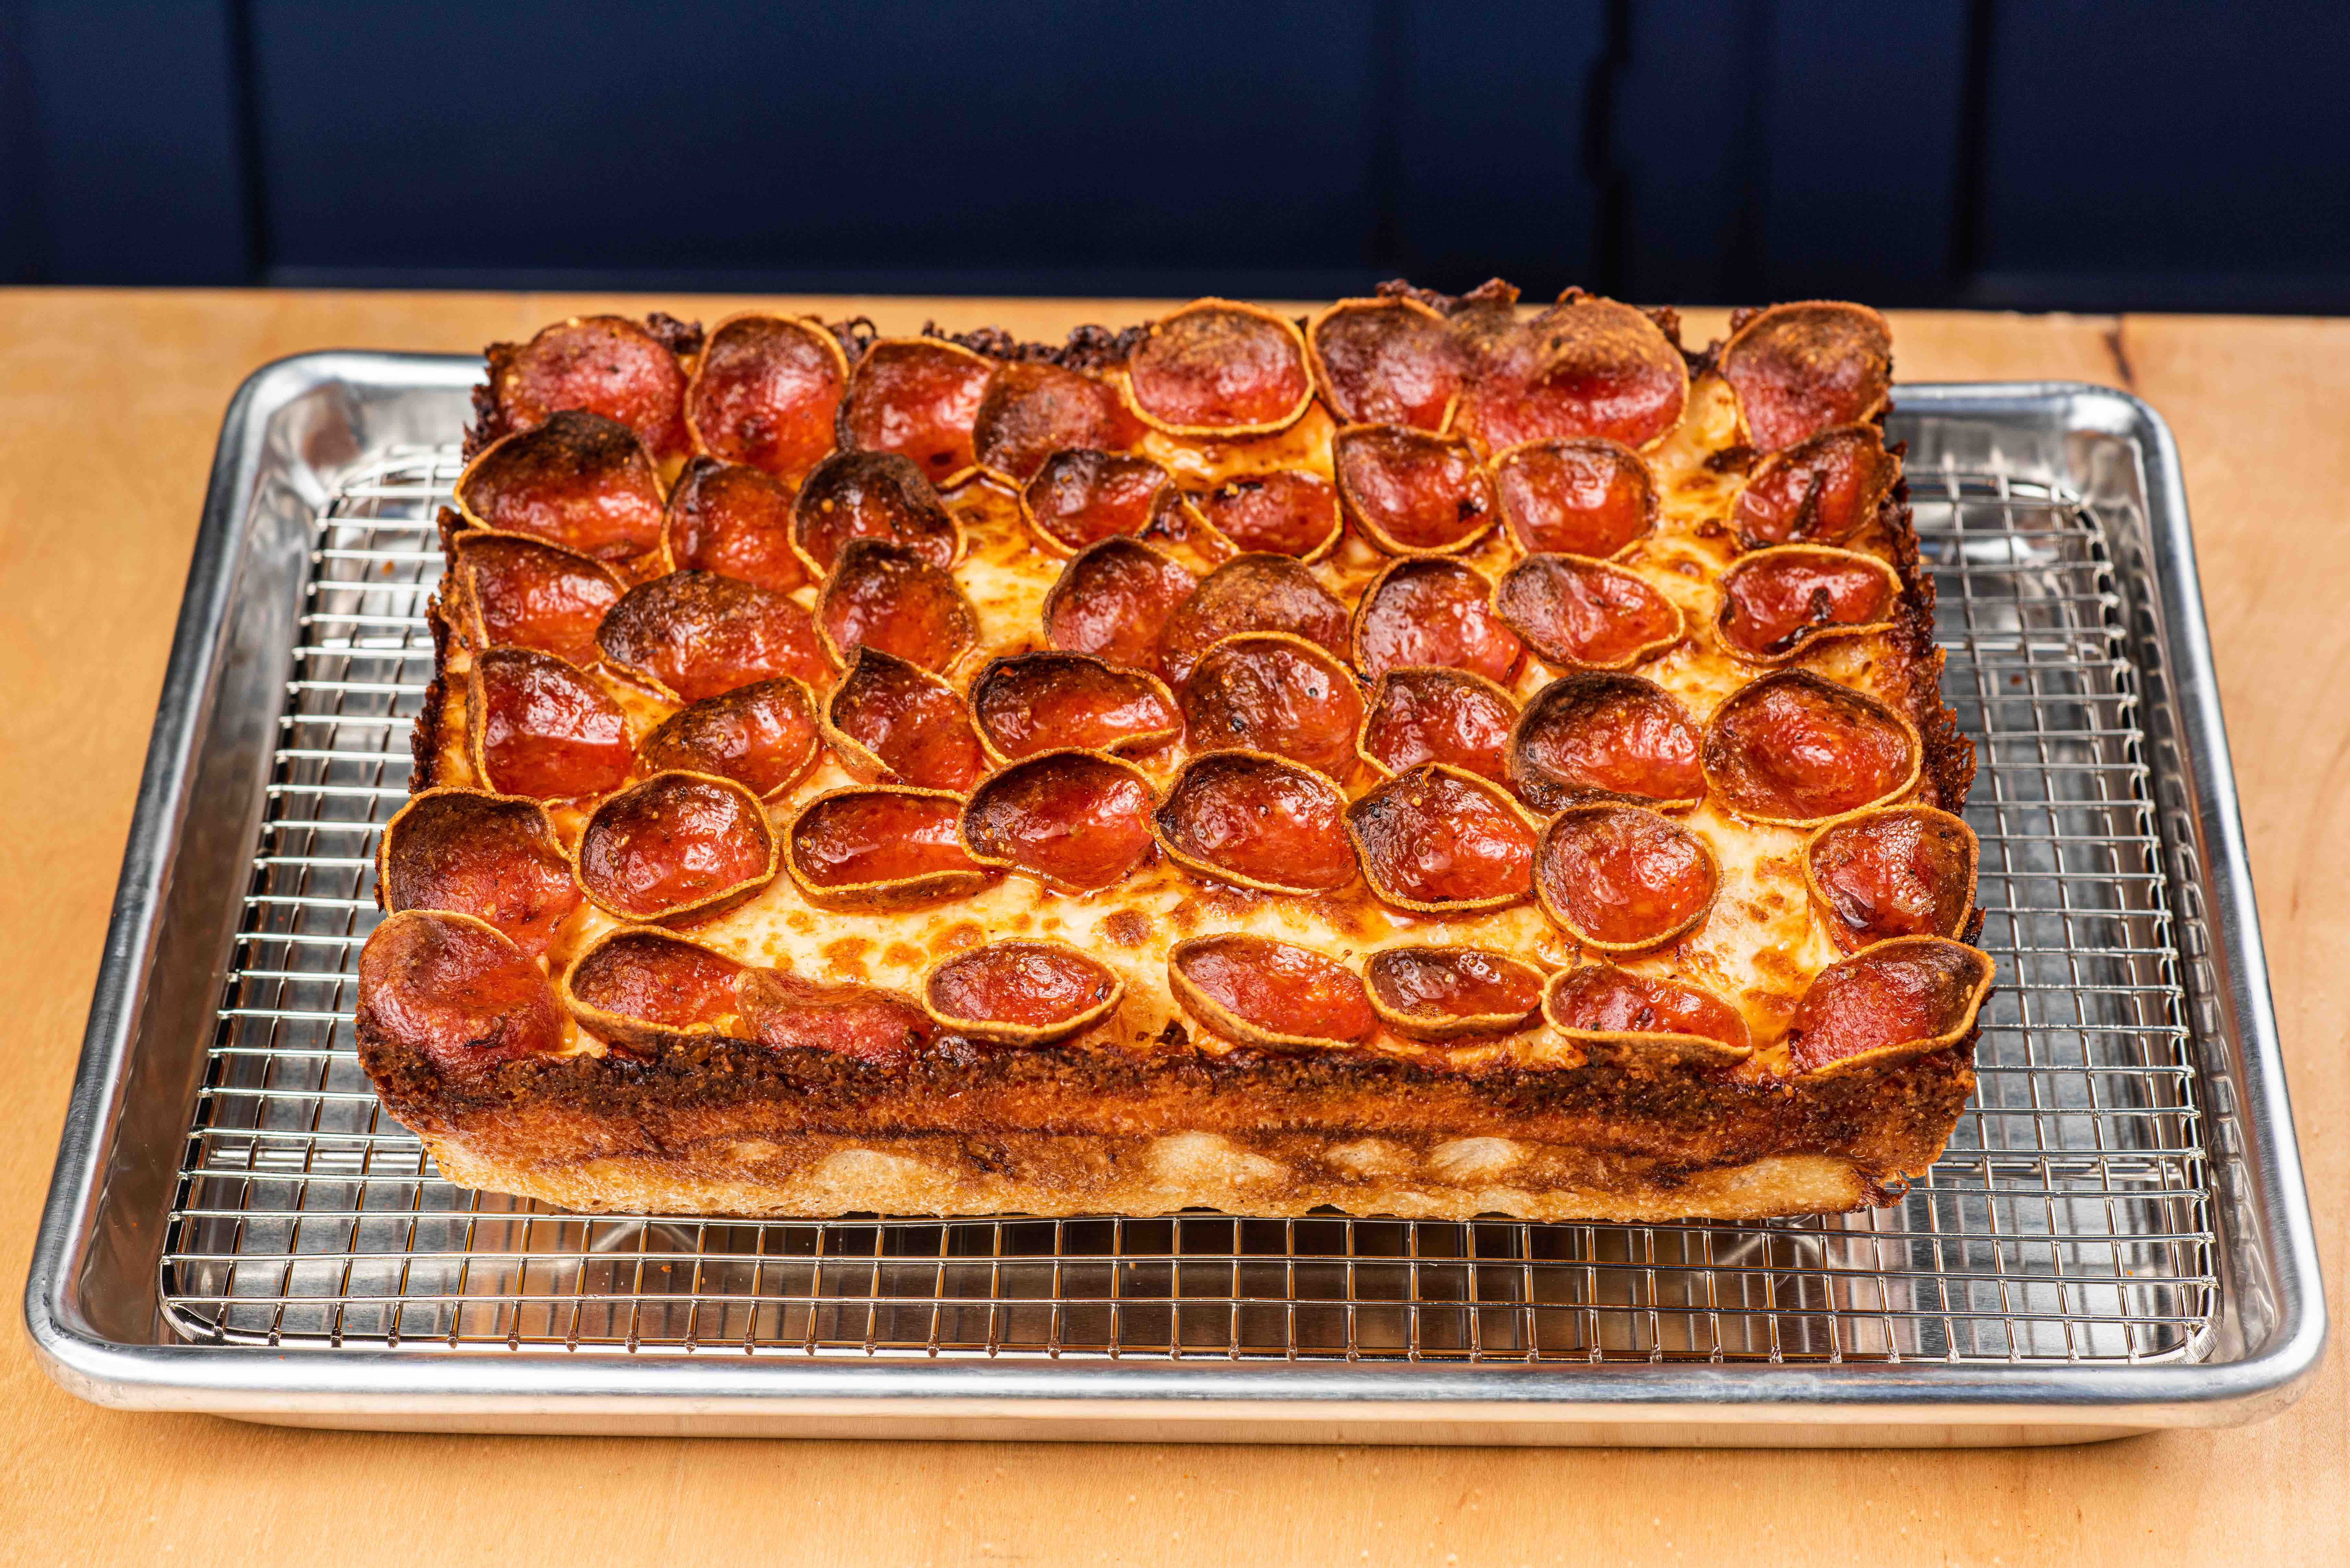 Rectangular Detroit-style pizza with pepperoni